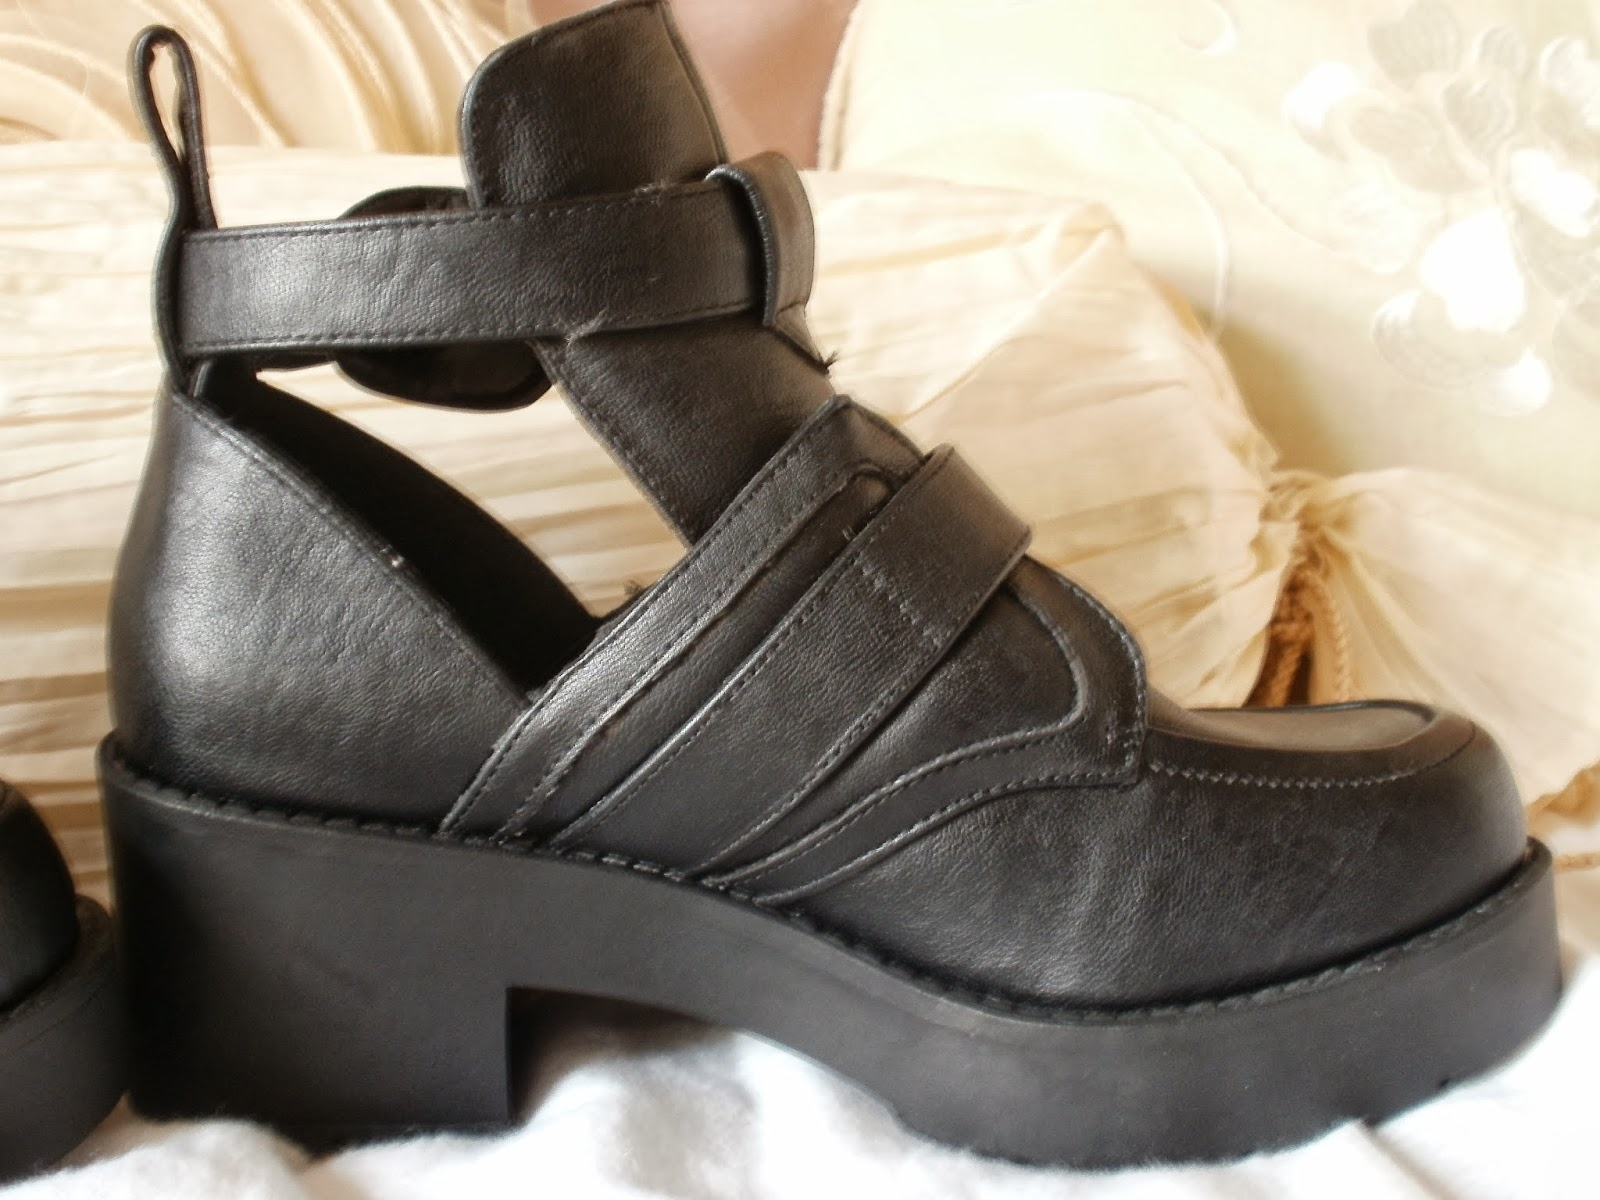 ae9d7ec4a16ef Porcelain Eleanor  Shoes on a Shoestring  4 Chunky Cut-out Grunge Boots